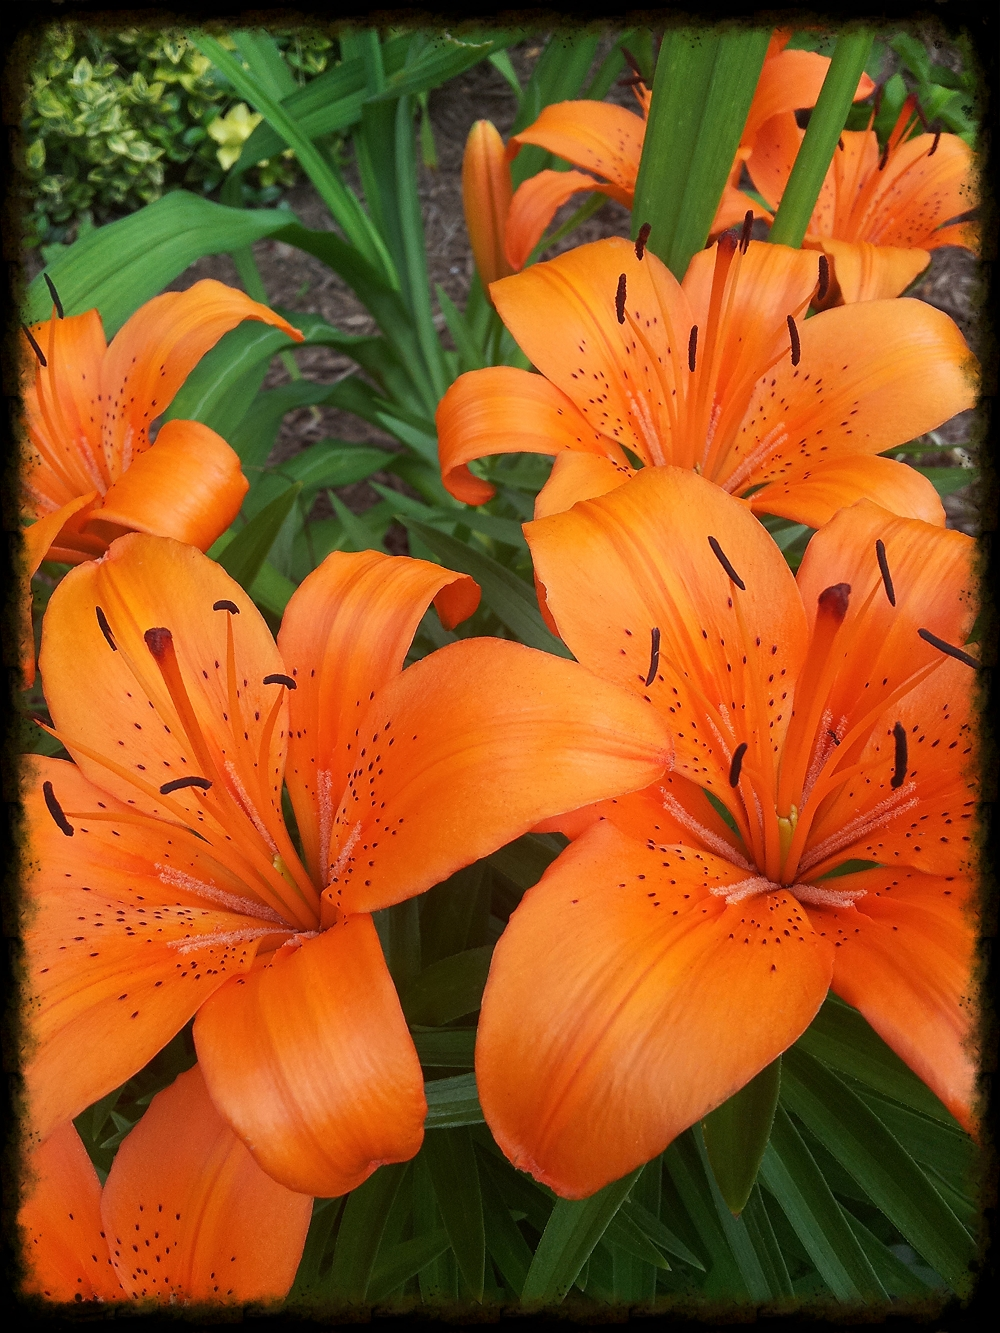 Asiatic Lilies showing off their flowers. -Shem R.